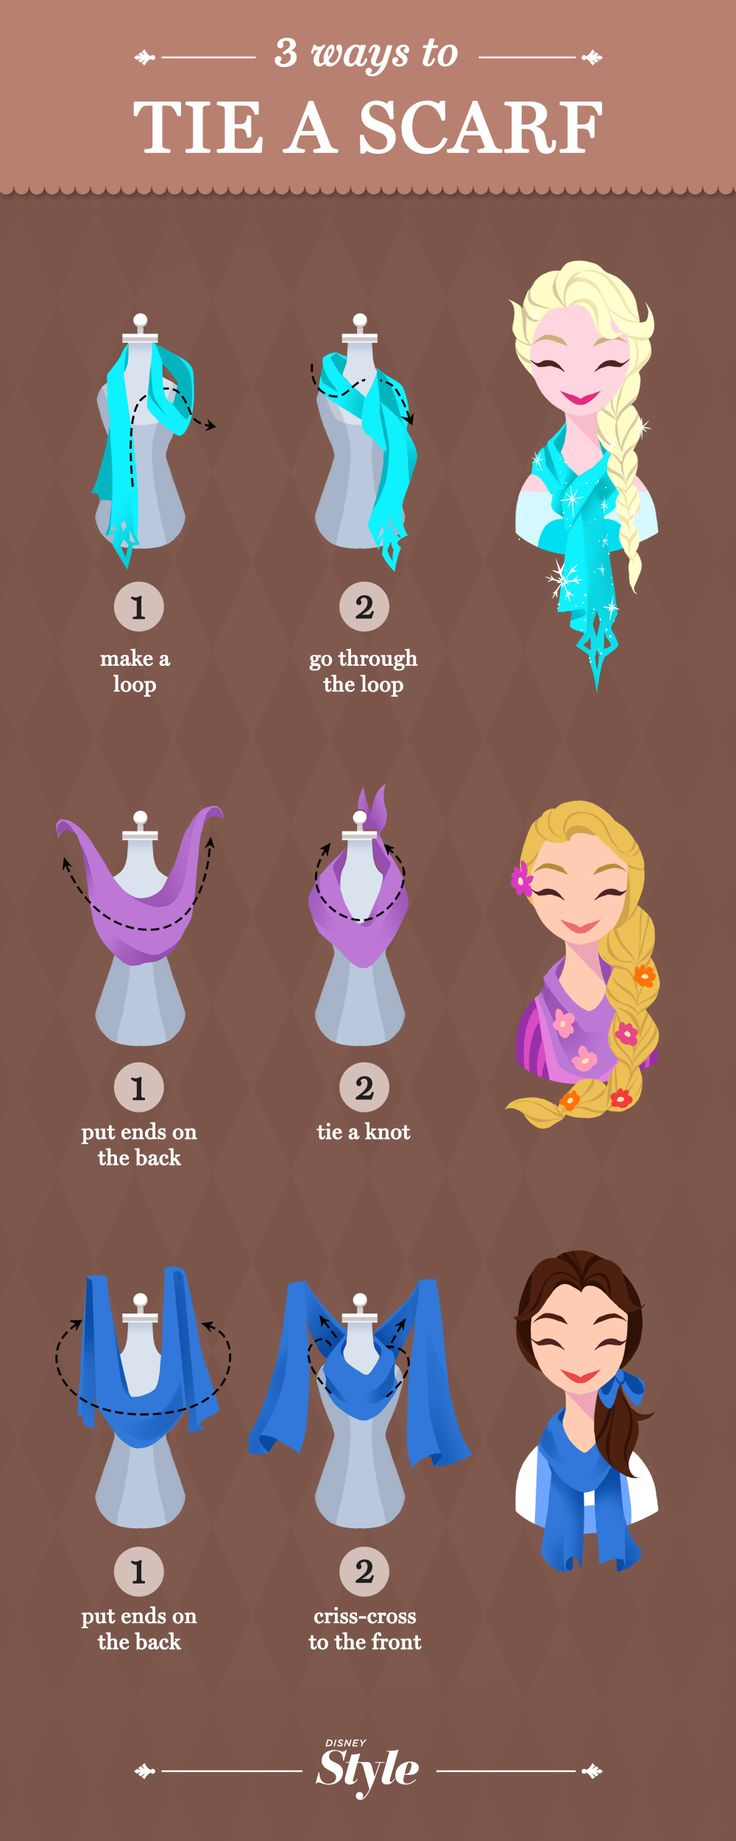 3 Enchanting Ways To Tie a Scarf- We created a scarf tying tutorial with the help of some of our favorite Disney ladies. Scarves are definitely one of our top winter weather accessories, because they give any outfit a cozy sophistication. As much as we love them though, sometimes we get into a rut about how style them. So, instead of just tossing your scarf over your shoulder again, we put together this fun tutorial of a few extra magical ways to style your scarf.